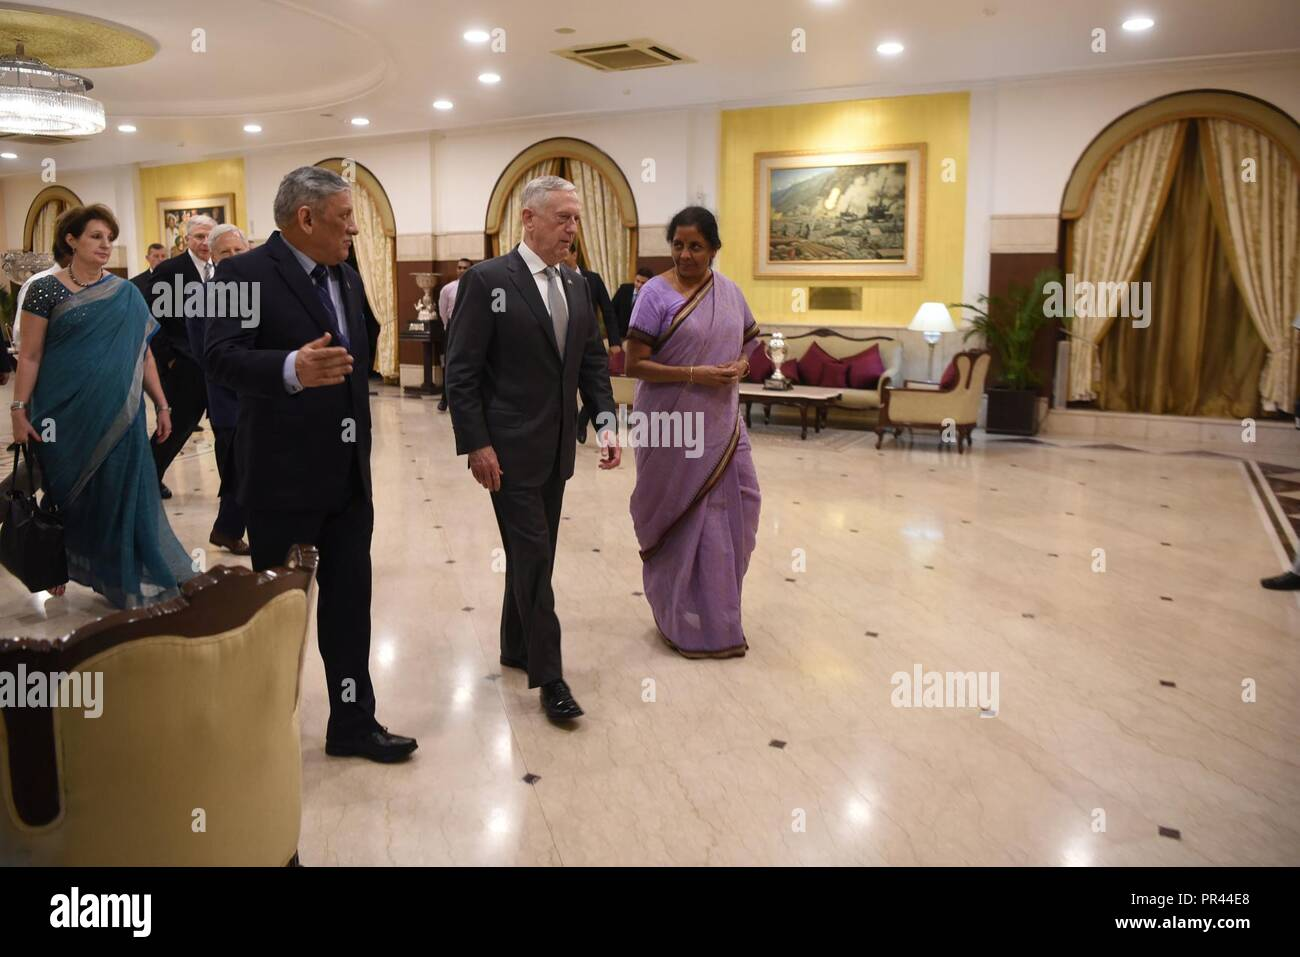 U.S. Secretary of Defense James N. Mattis meets with Indian Defense Minister Nirmala Sitharaman at an Indian Ministry of Defense-hosted dinner at the Army Battle Honours Mess building, New Delhi, India, Sept. 6, 2018. Mattis was in India for the first ever U.S.-India 2+2 ministerial dialogue. Stock Photo